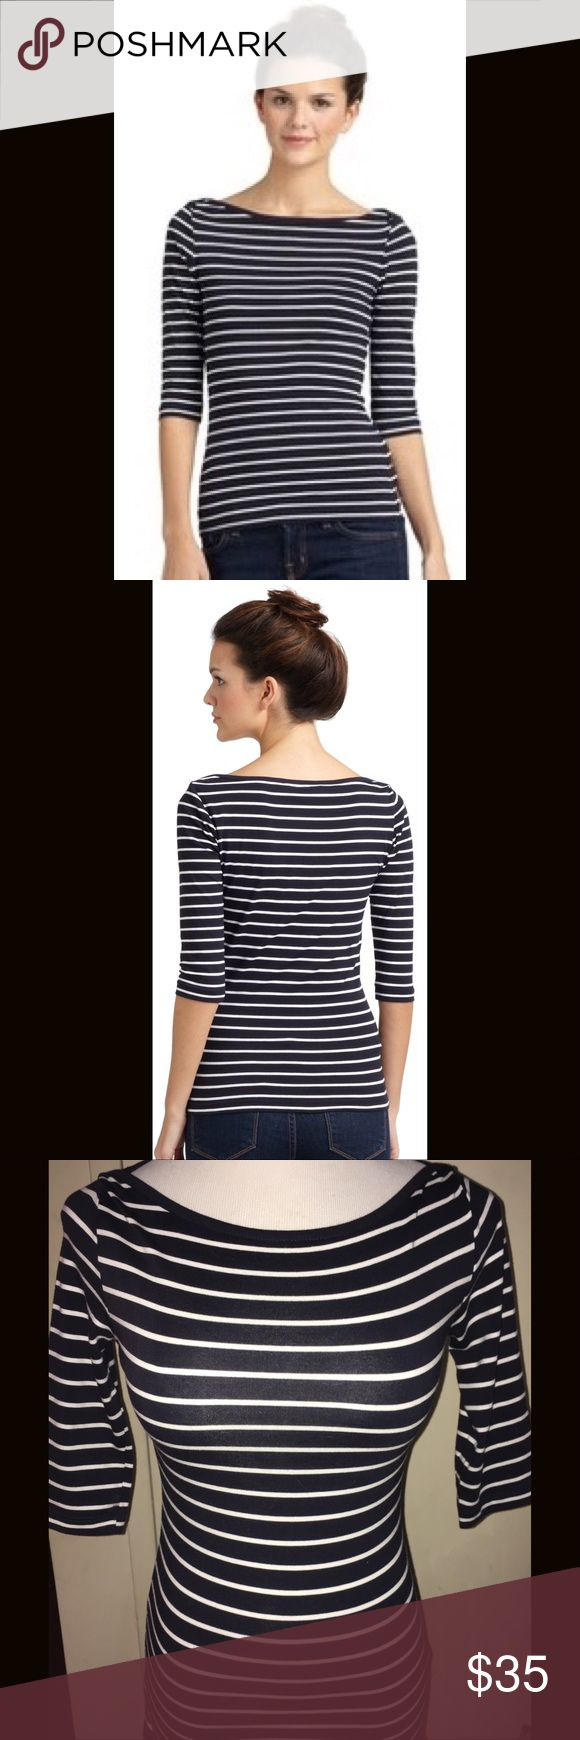 French Connection Striped Boatneck Top - Size XS French Connection Nautical Striped Boatneck Top in a Size XS.  Three-quarter length sleeves.  Like new/excellent condition! French Connection Tops